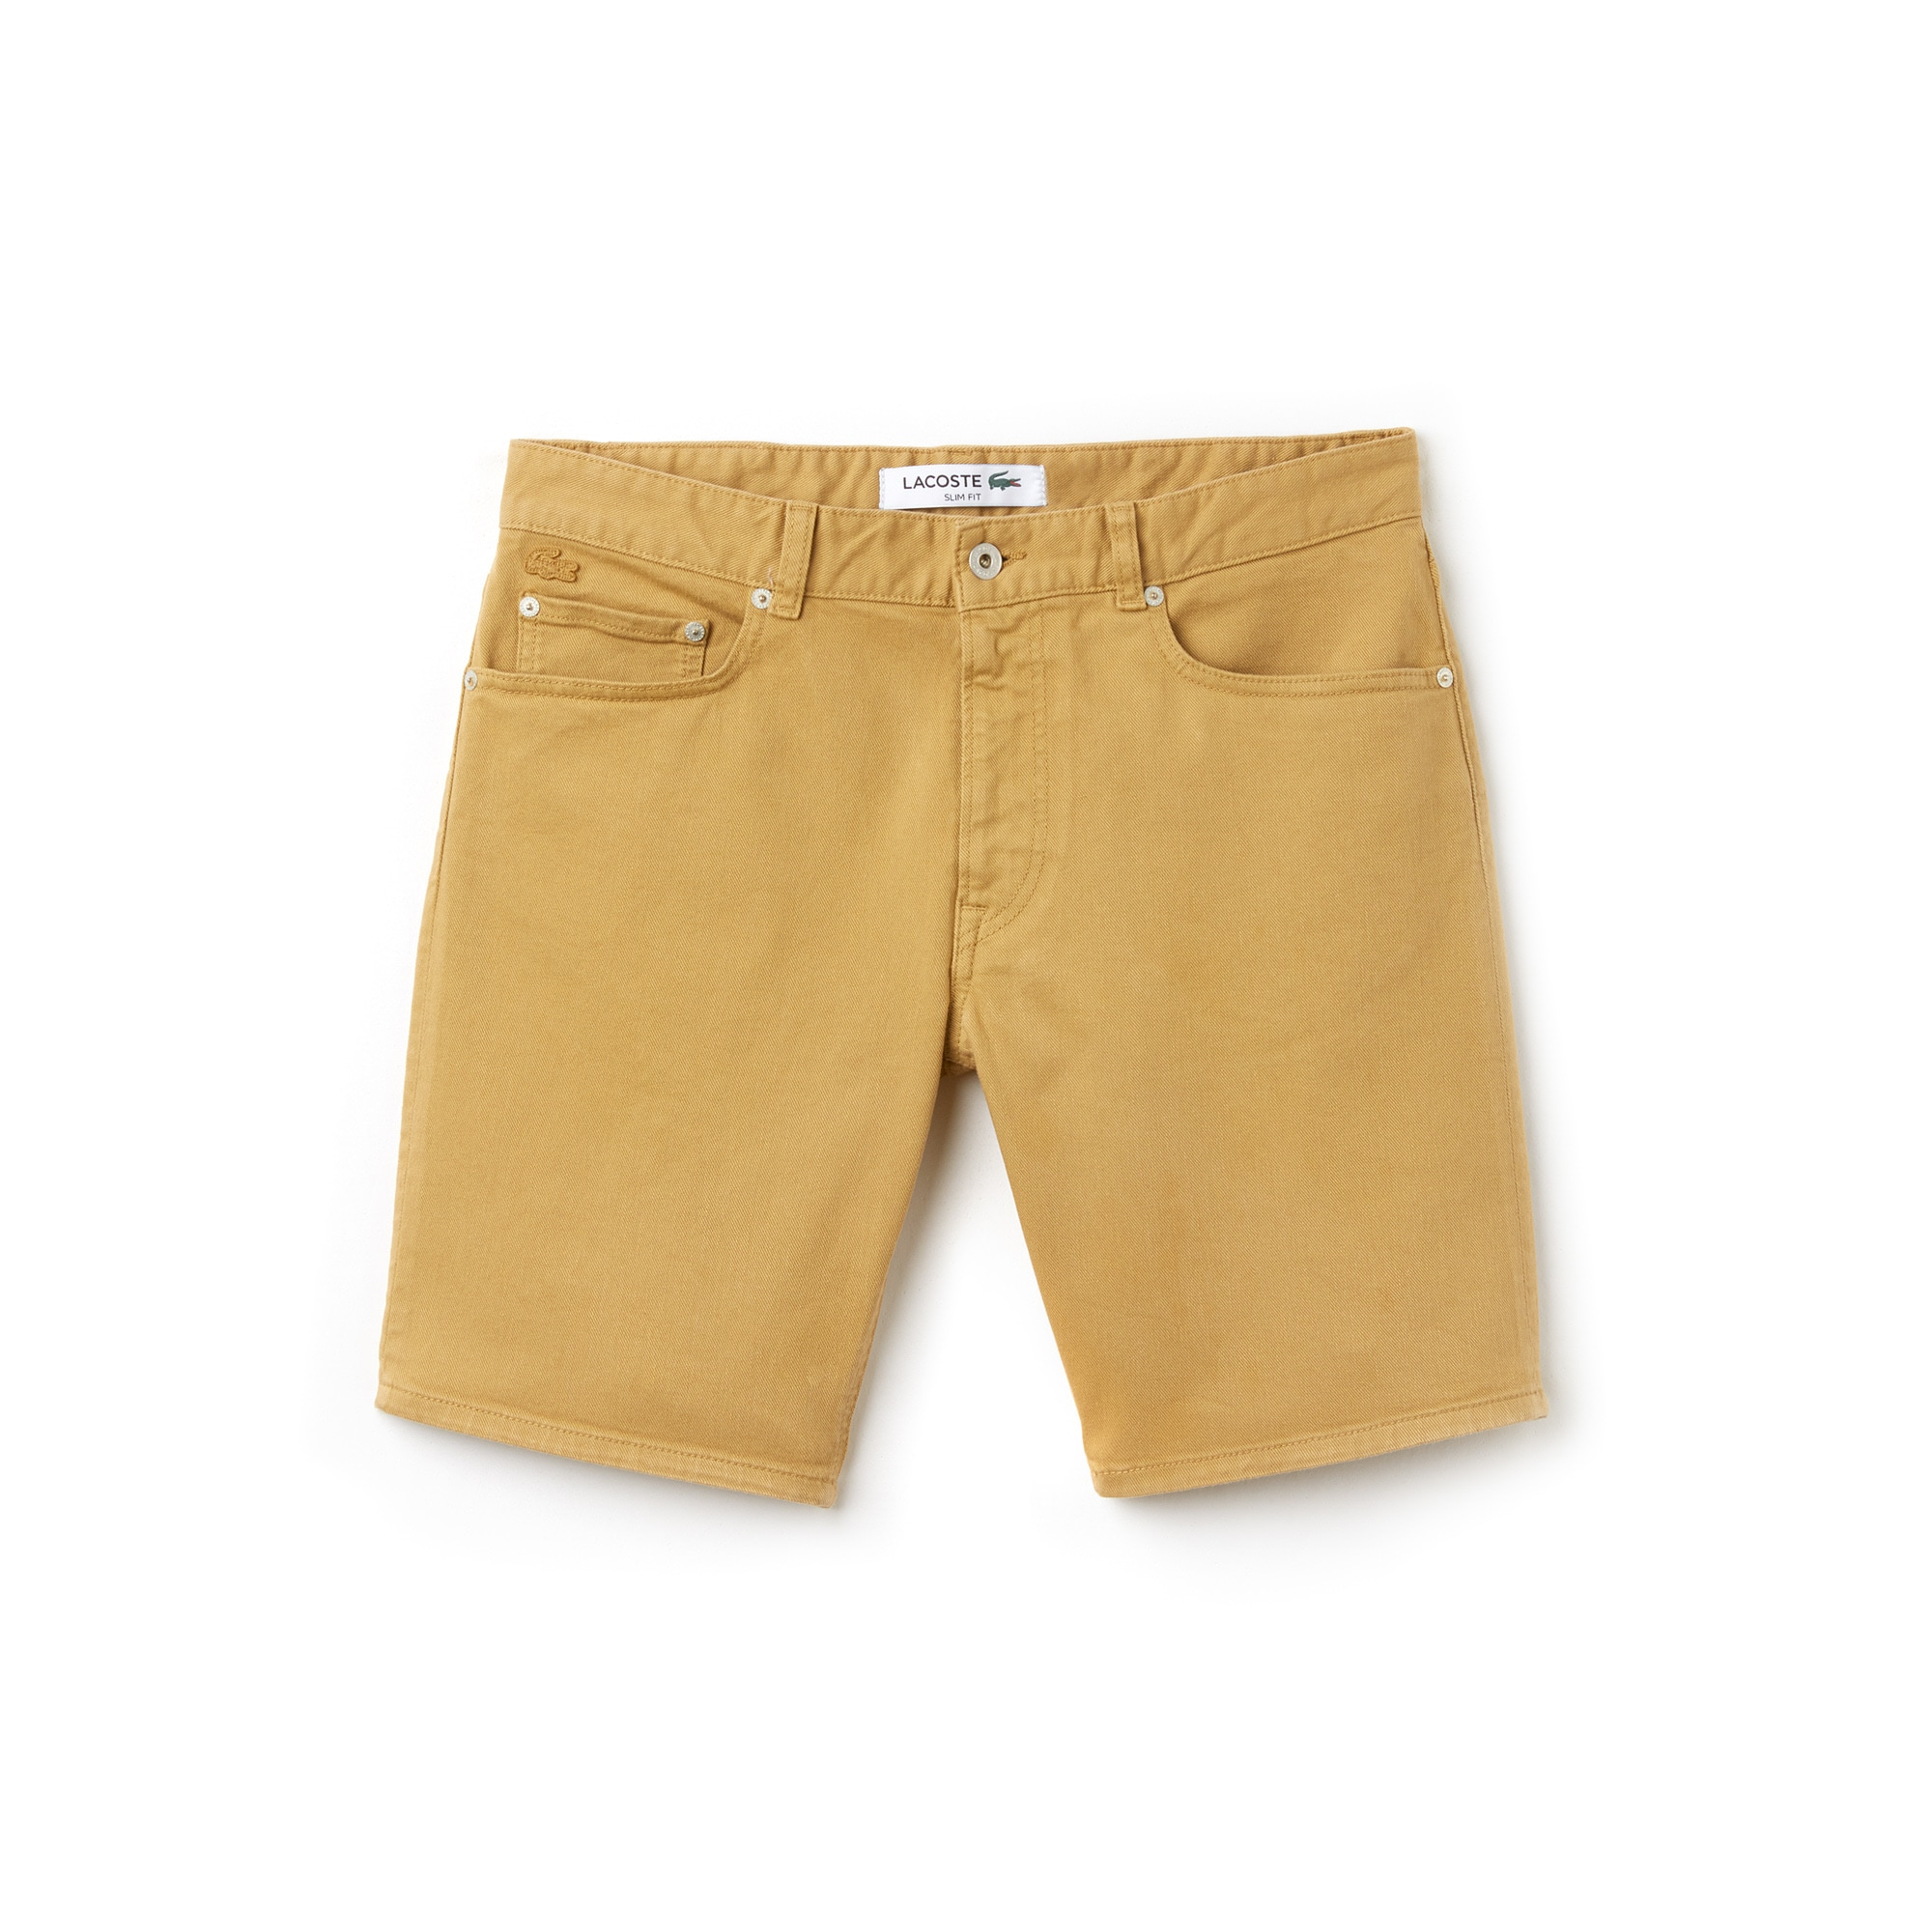 Bermudas 5 bolsos slim fit em twill stretch unicolor